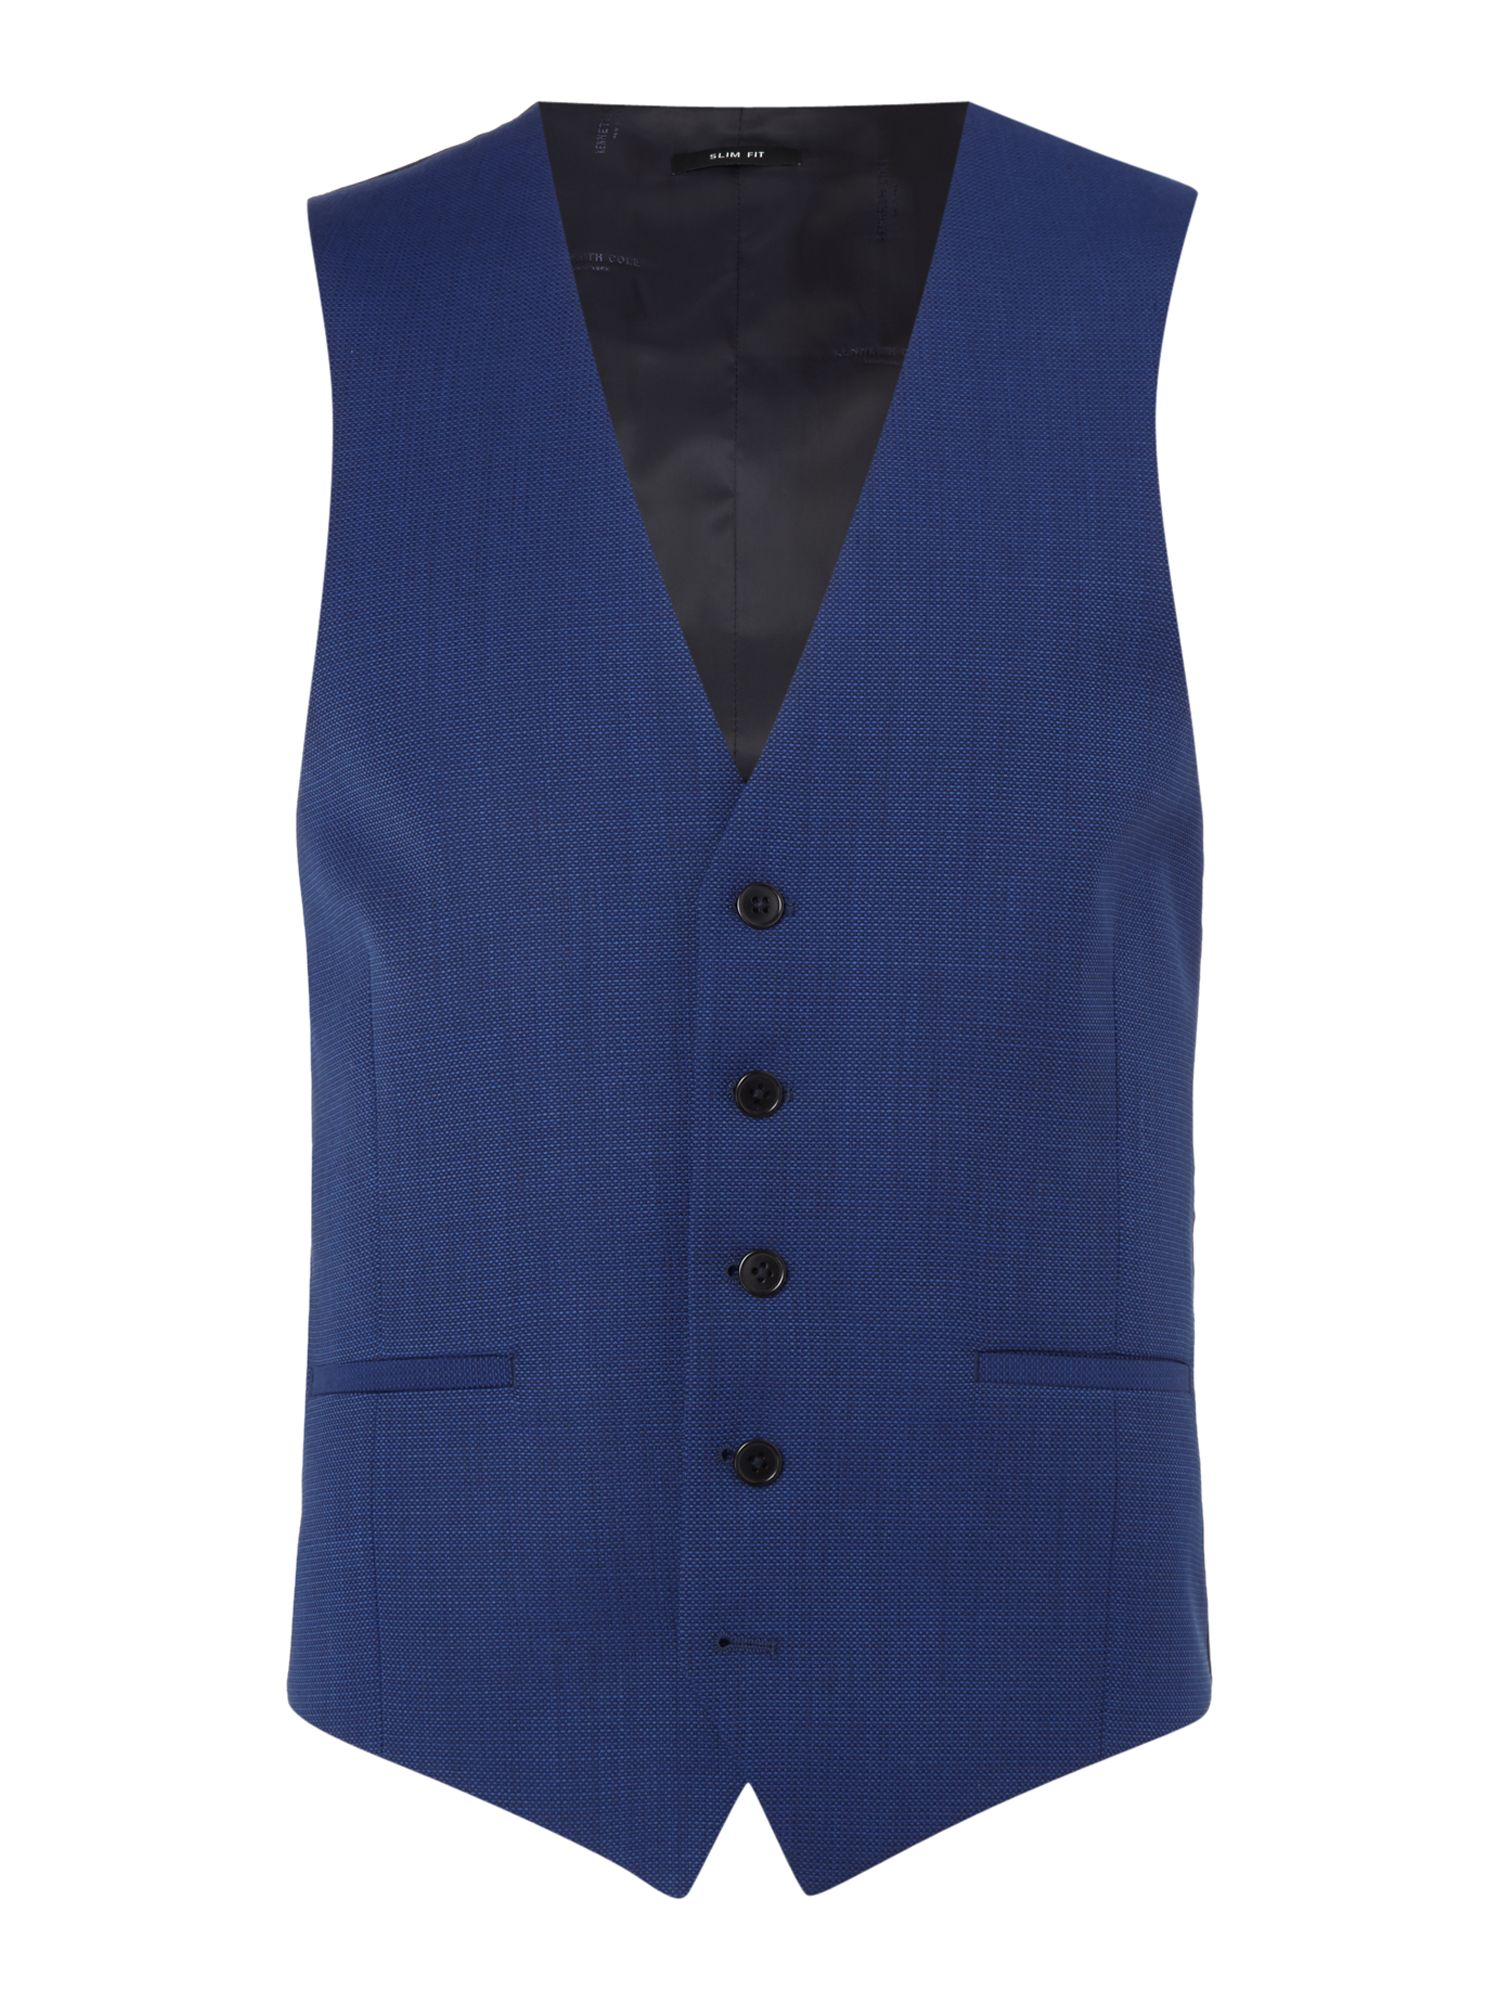 Men's Kenneth Cole Hylan Slim Fit Pindot Suit Waistcoat, Navy